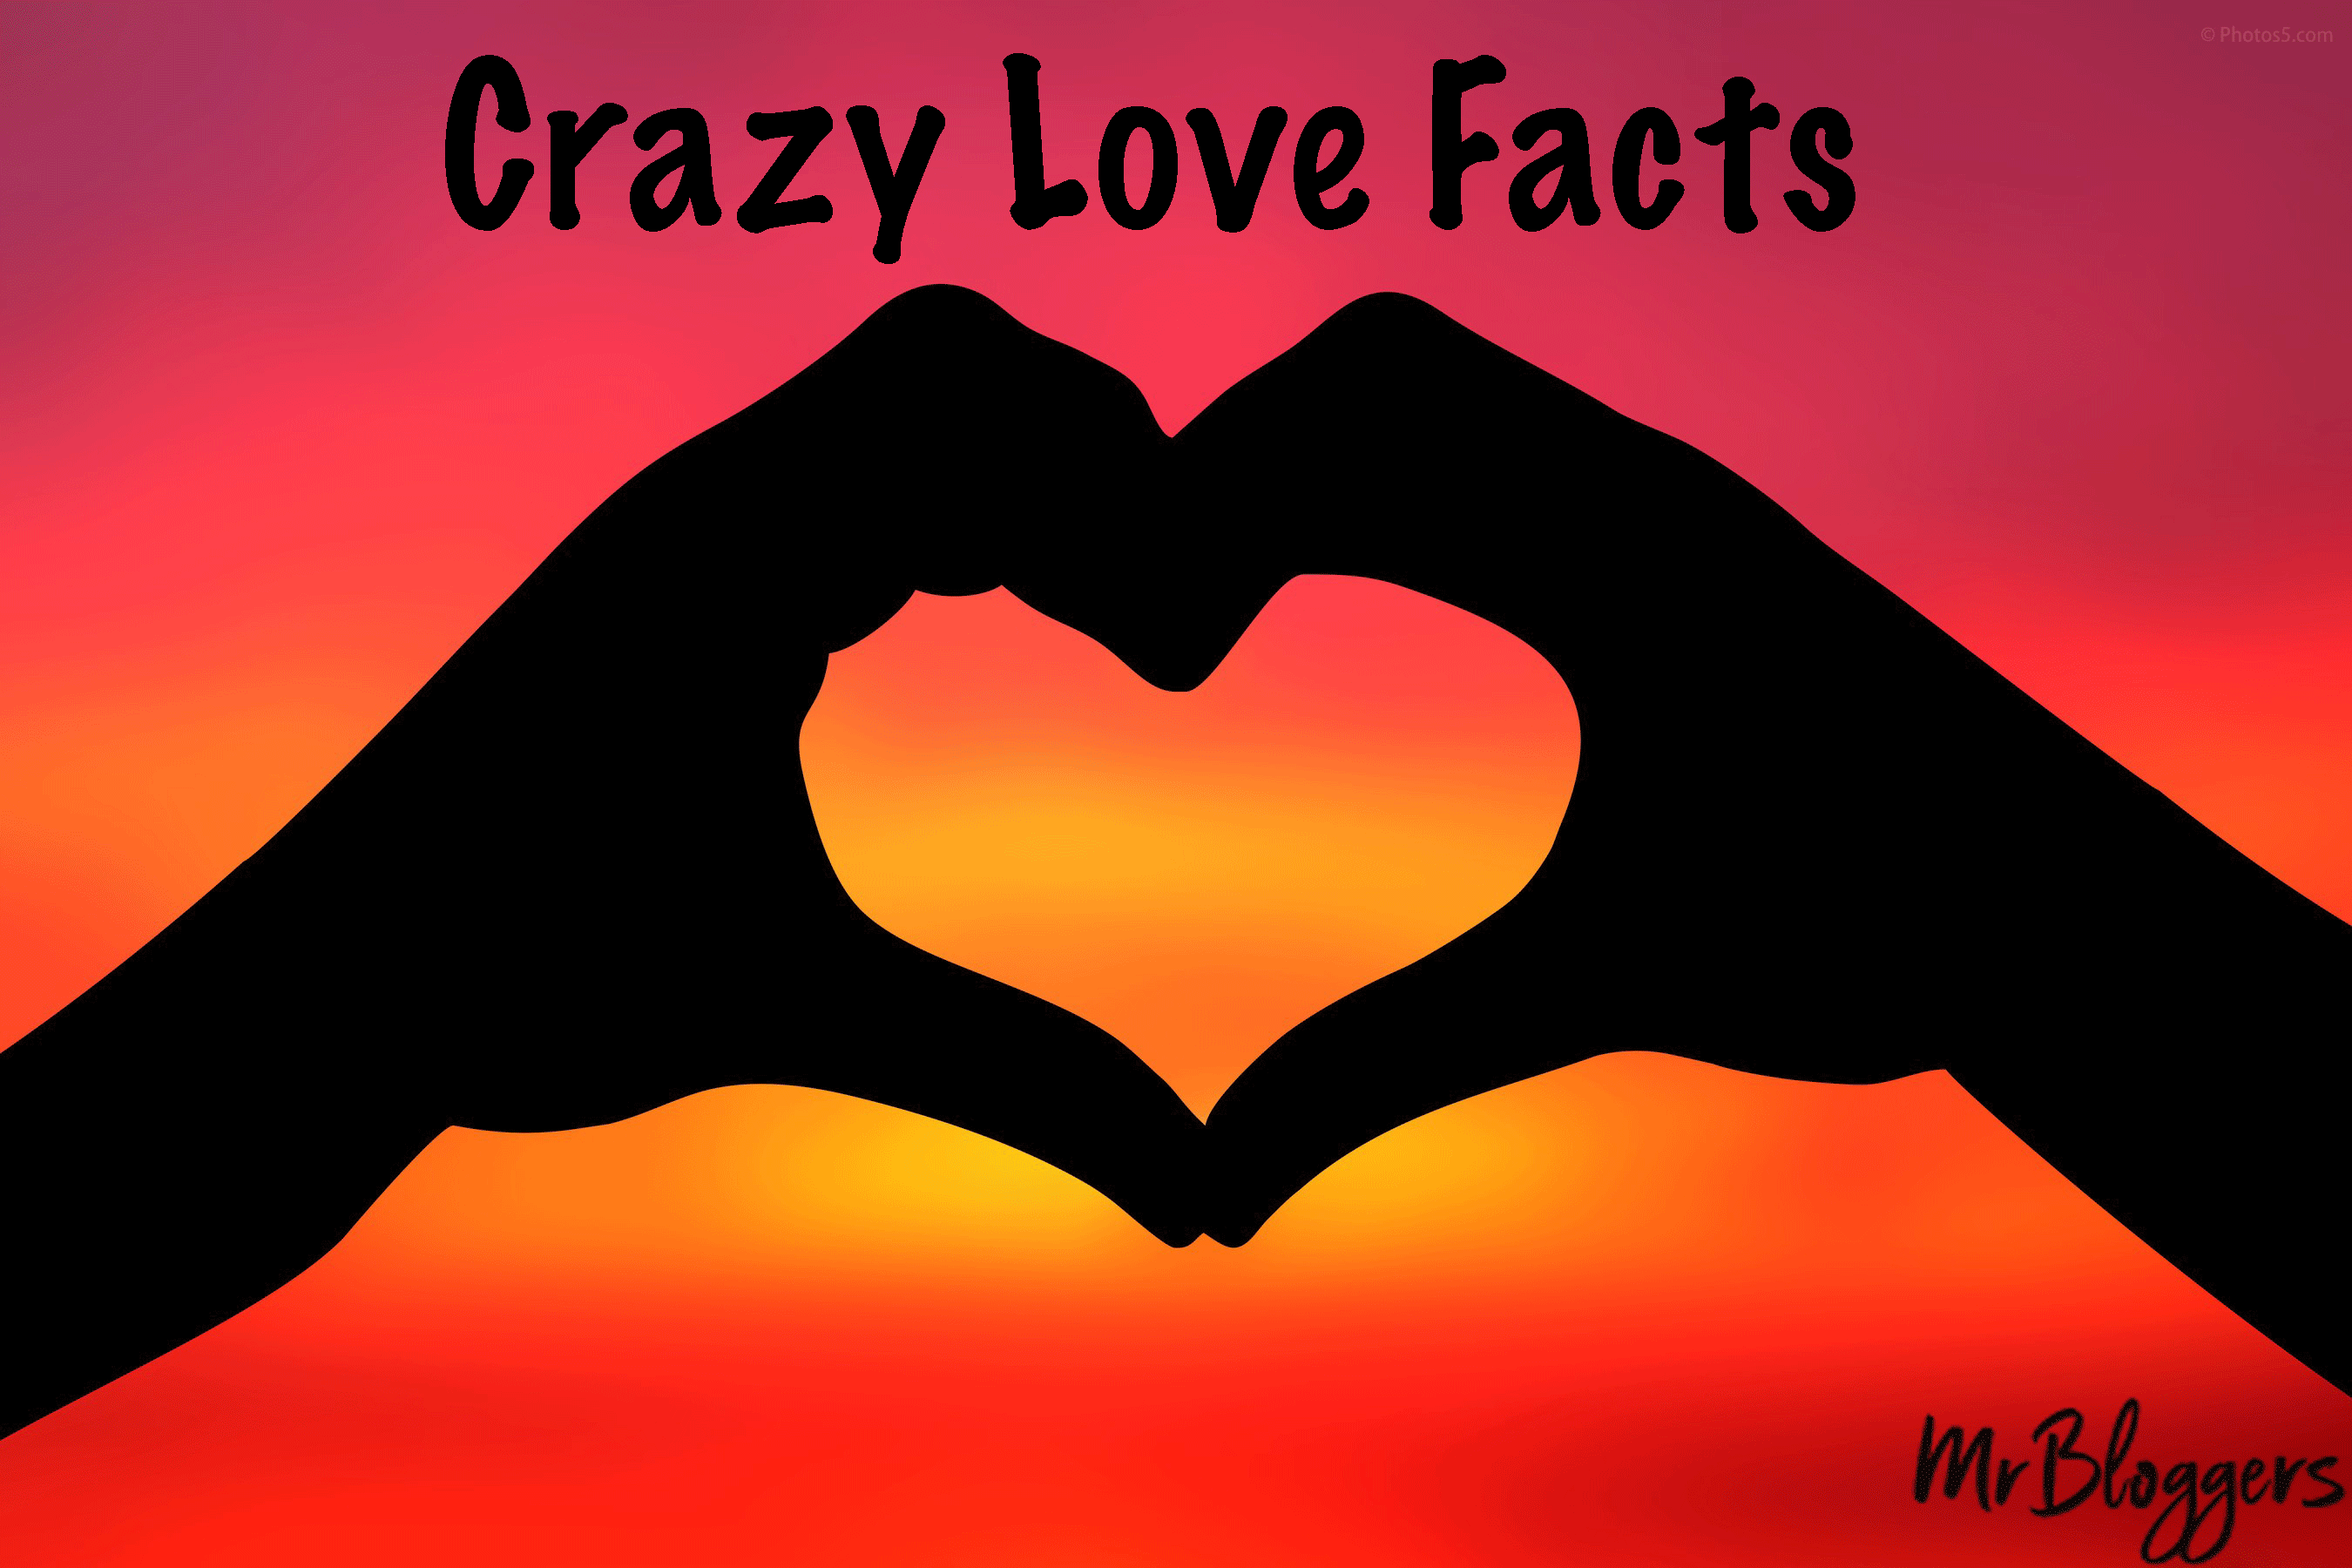 30 Interesting Facts About Love Psychology Crazy Love Facts To Warm Your Heart